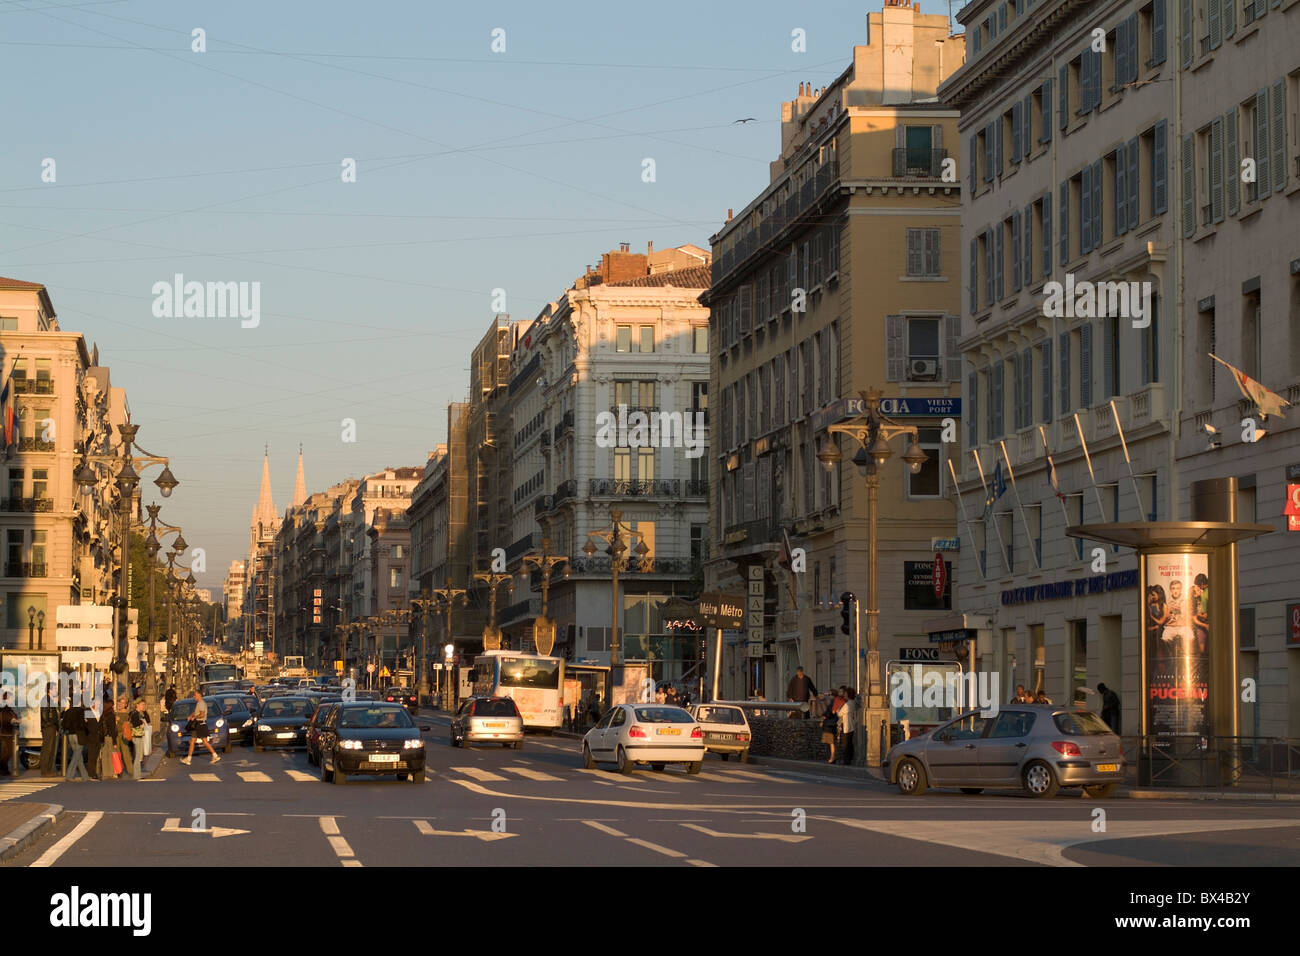 marseille france city street scene la canebi re street in the stock photo 33287939 alamy. Black Bedroom Furniture Sets. Home Design Ideas